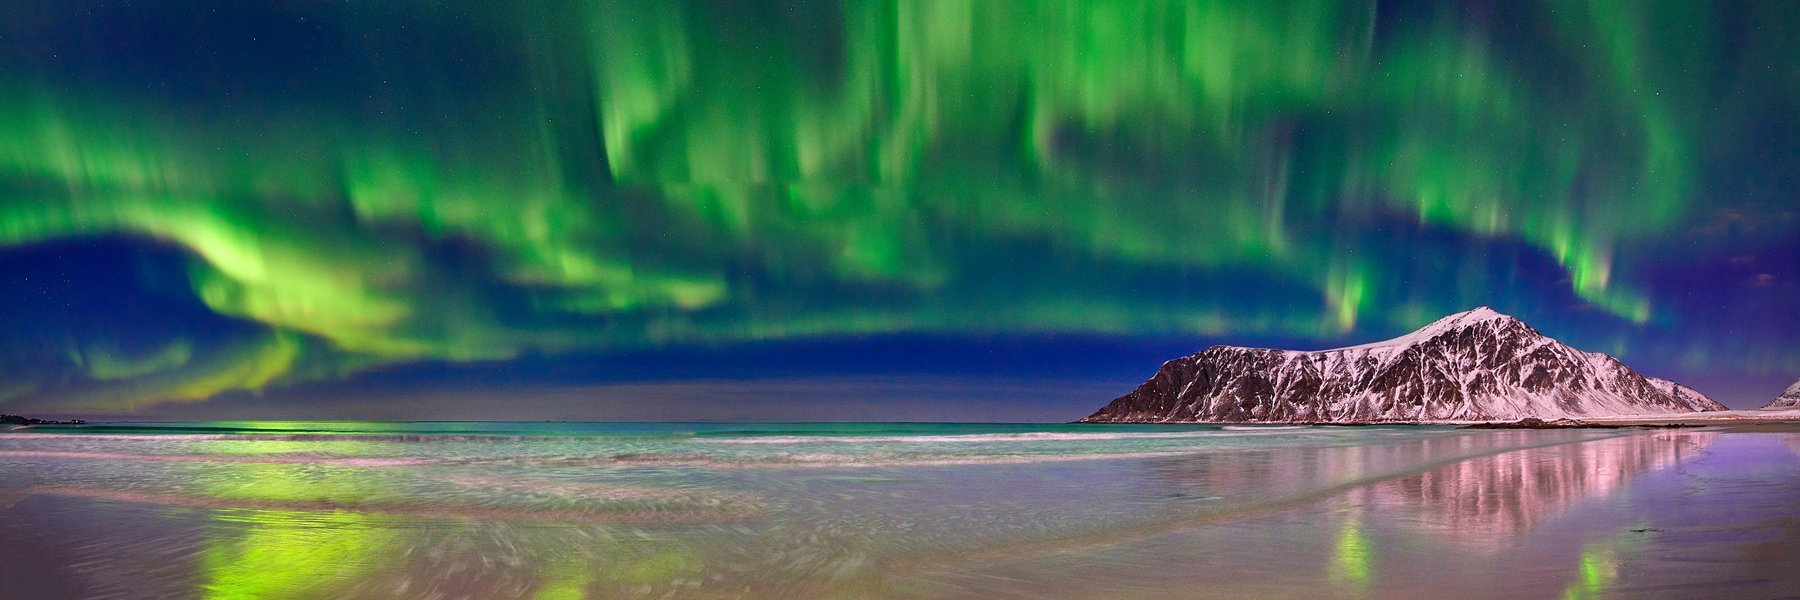 Brilliant green curtains of aurora borealis reflected in the waters on the shoreline, Lofoten Islands, Norway.